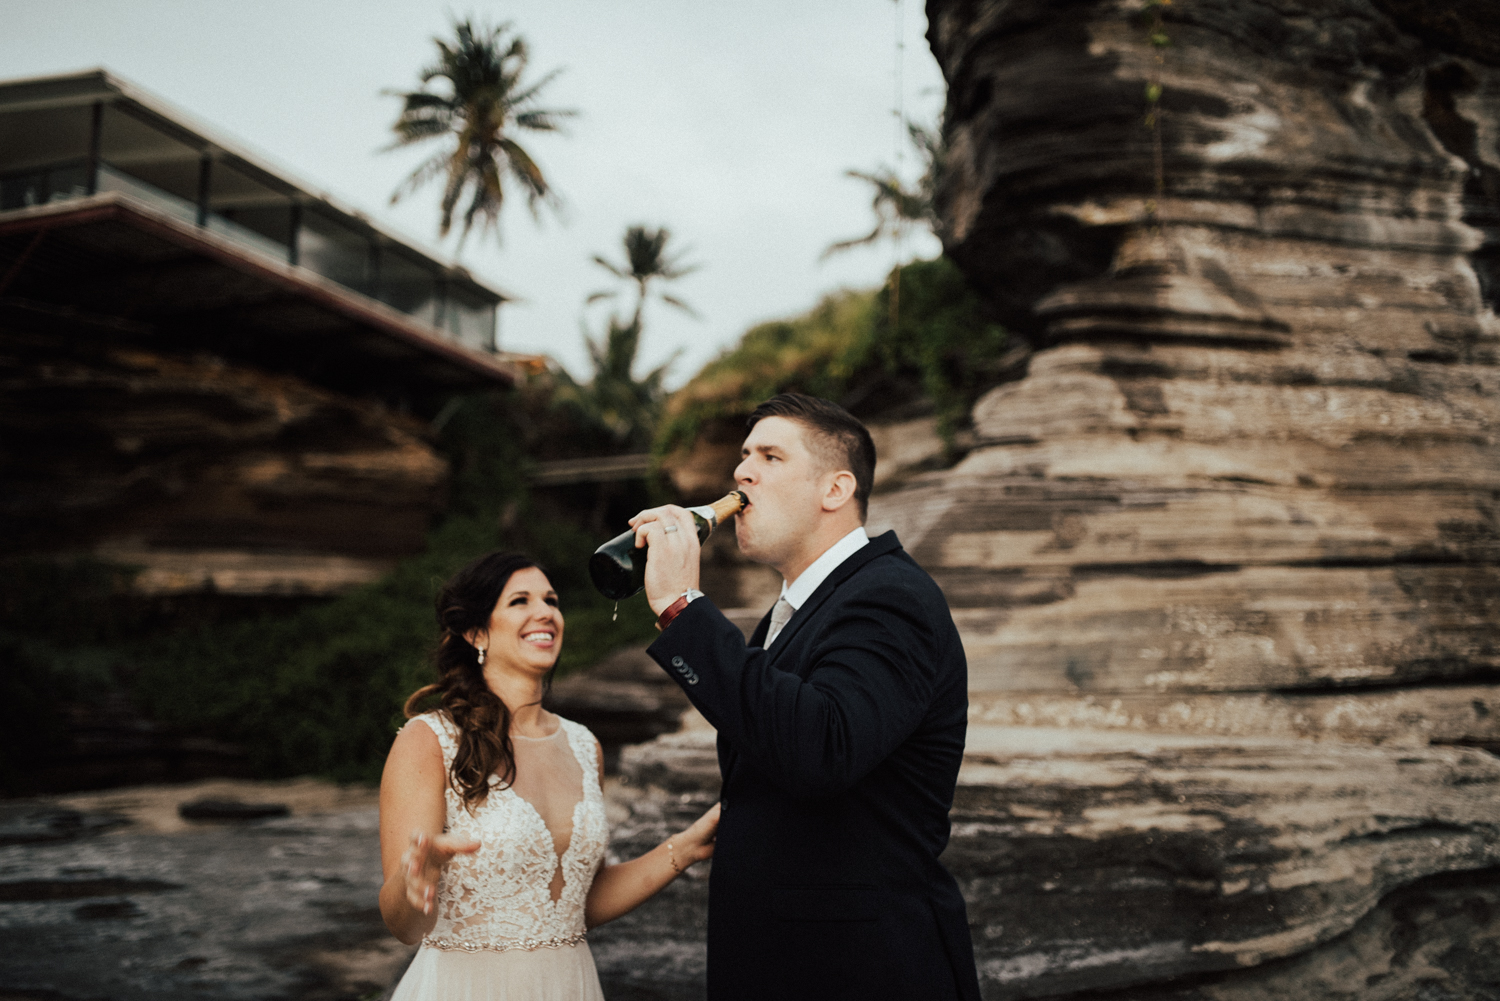 adventurous-Hawaii-elopement-photographers-78.jpg